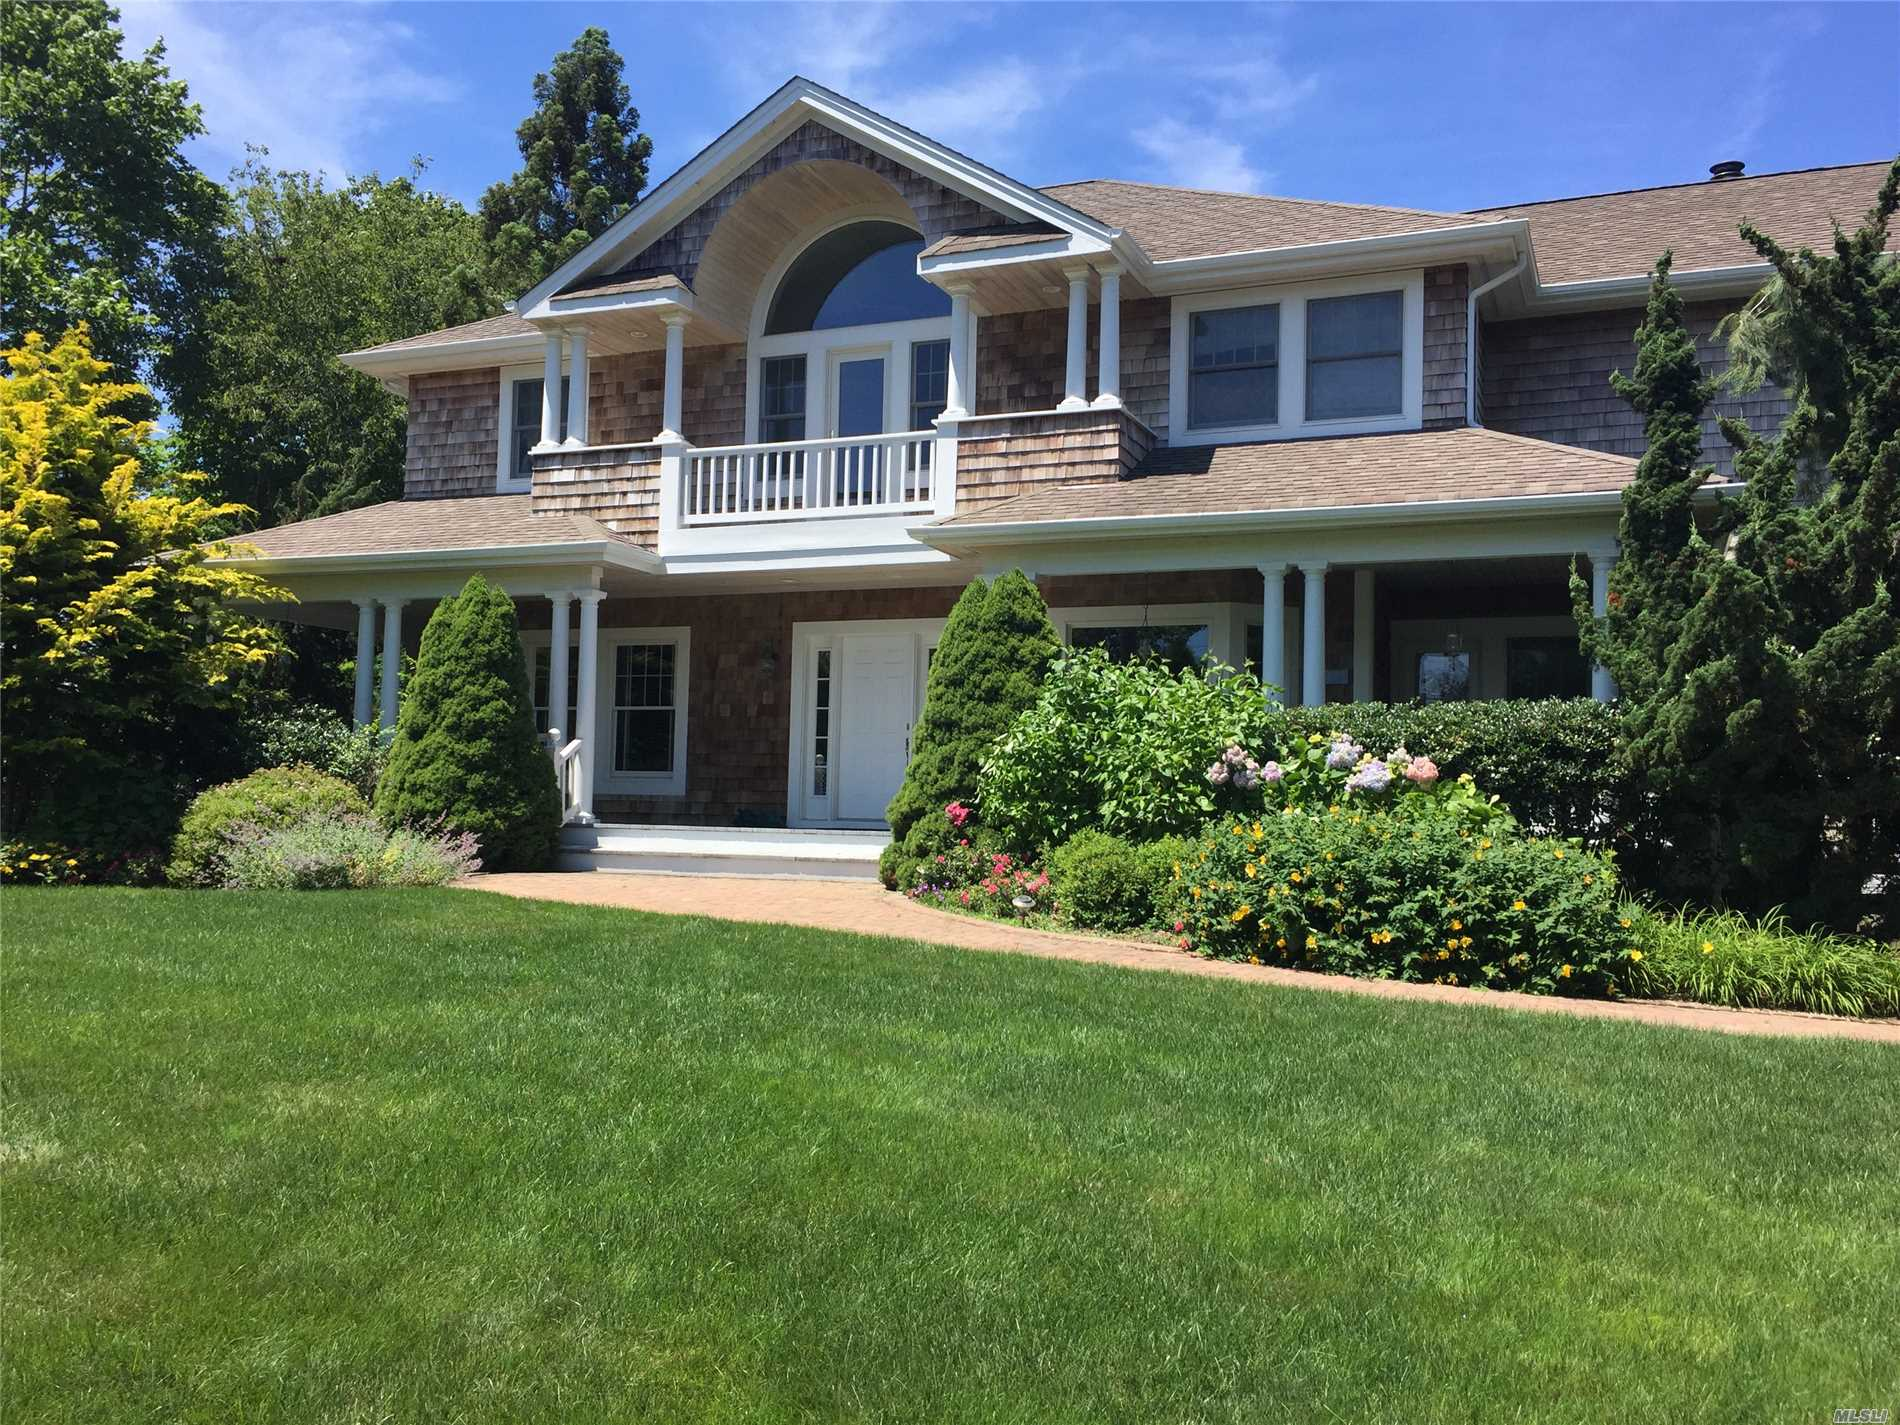 South Of Quogue St. This Lovely Light Filled Post Modern Home Offers Carefree Living In The Village. Open Floor Plan Includes A Centrally Located Kitchen Which Opens To The Living Room, Dining Room And Sun Room. Spacious Cedar Deck Overlooks An Expansive Lawn And Fenced Pool Surrounded By Mature Privet Hedges, Providing Privacy. Second Floor Includes A Spacious Master Suite With Two Additional Bedrooms, Baths And A Bonus Room For Additional Guests.